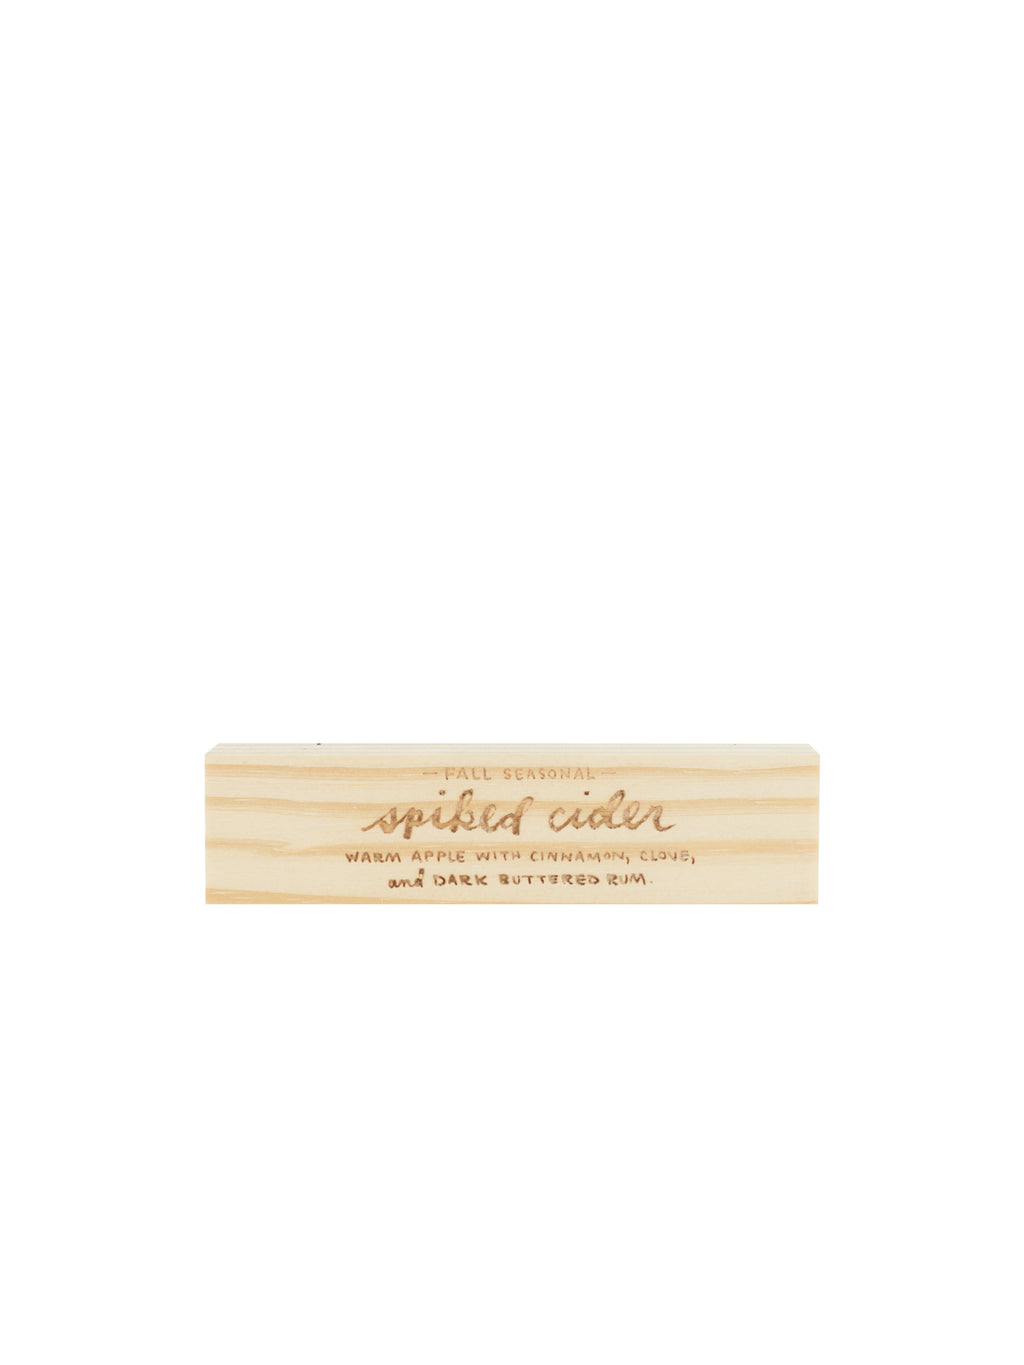 Engraved Spiked Cider Block